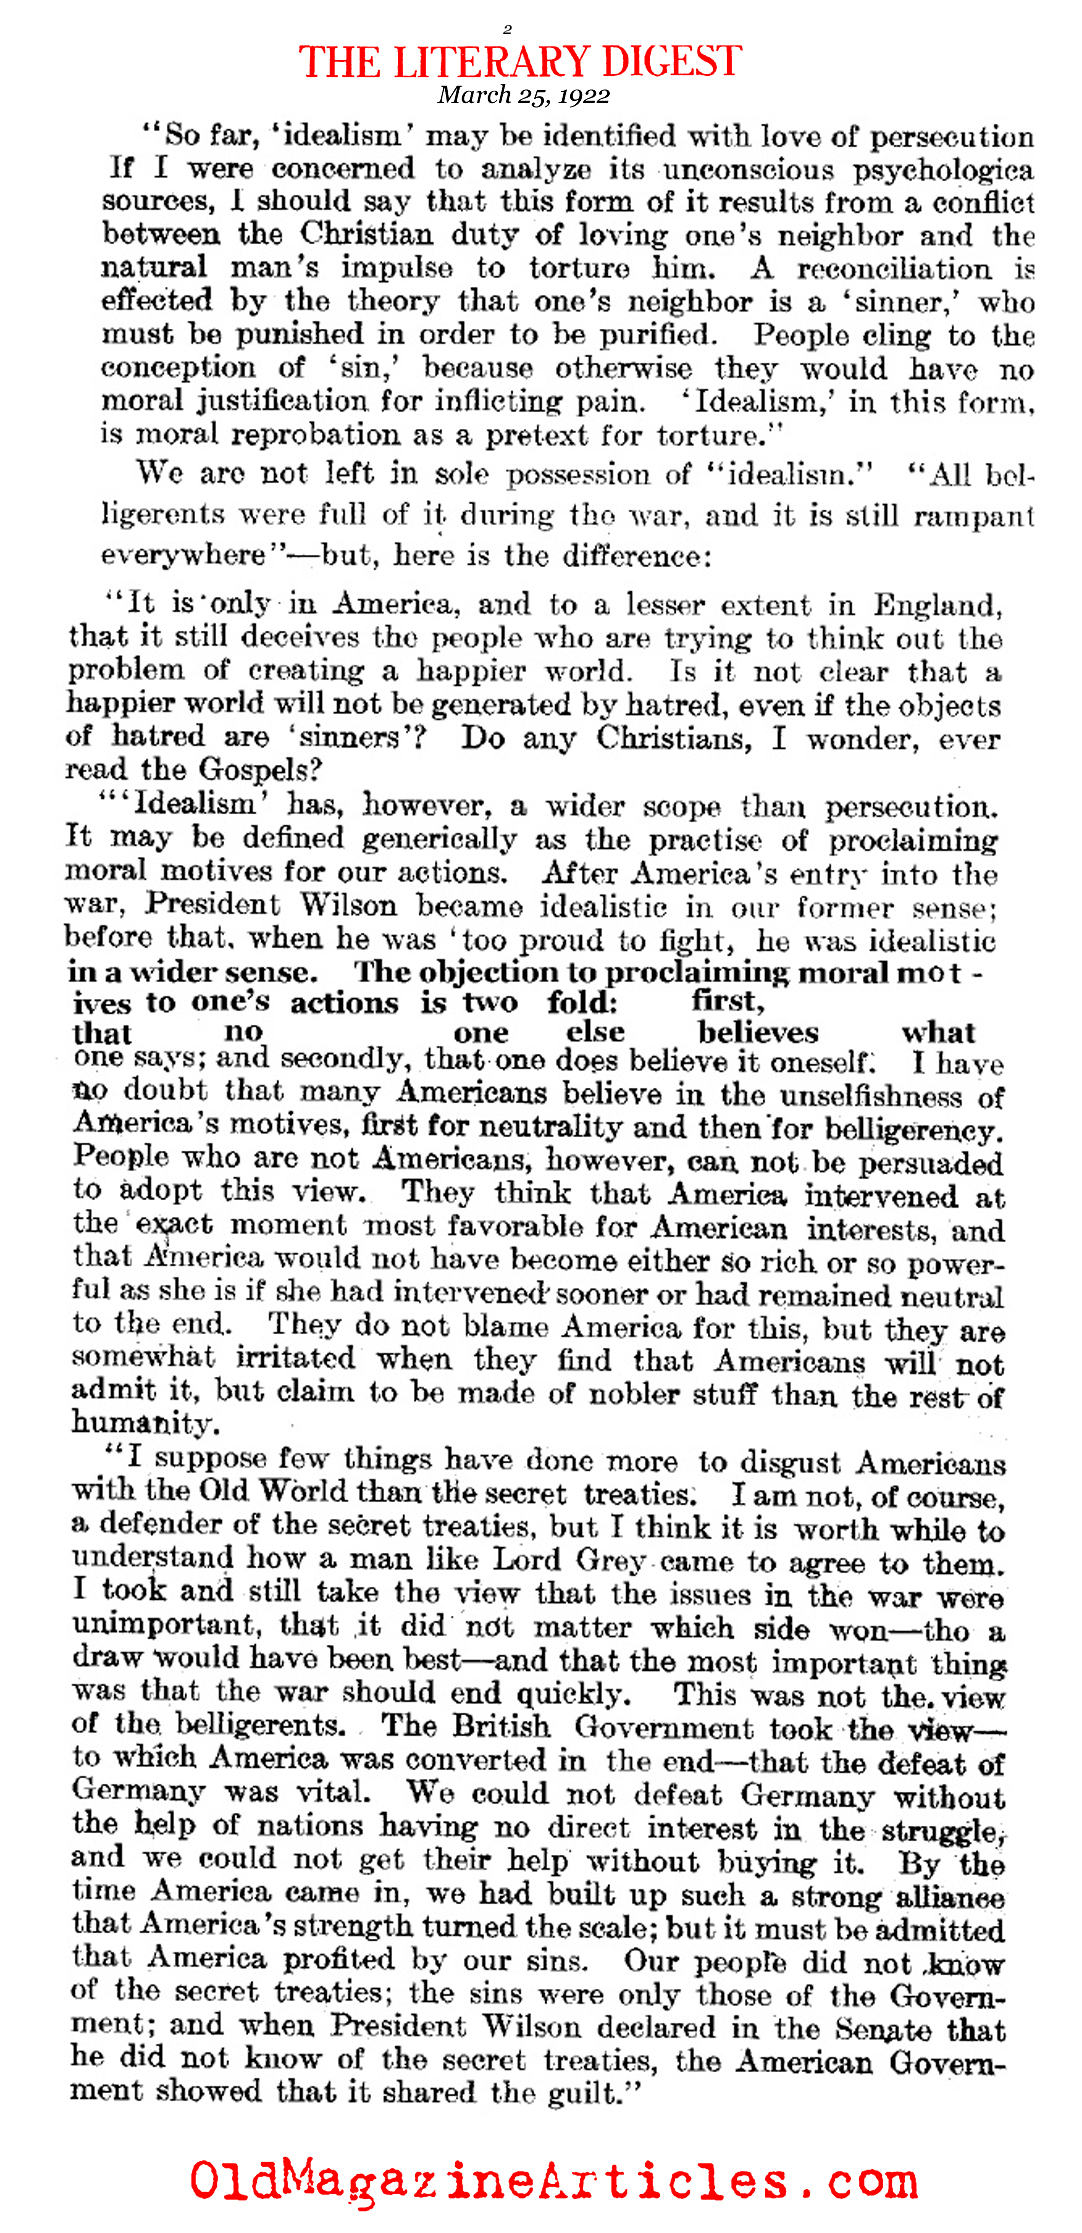 Bertrand Russell on American Idealism  (The Literary Digest, 1922)